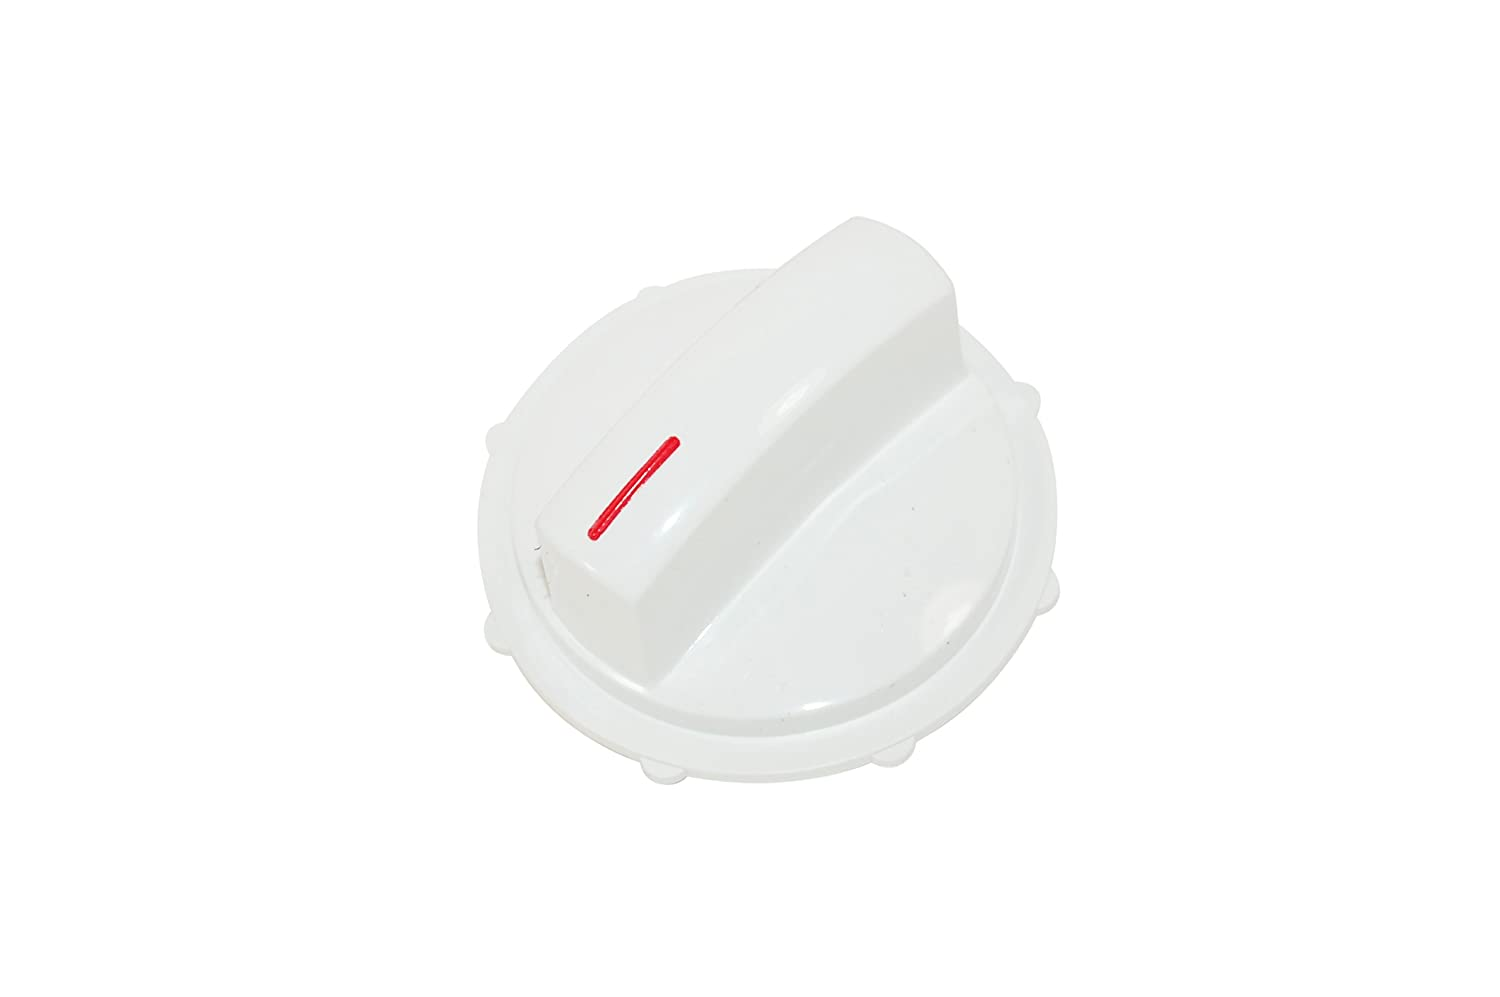 Bosch Tumble Dryer White Control Knob. Genuine part number 604440